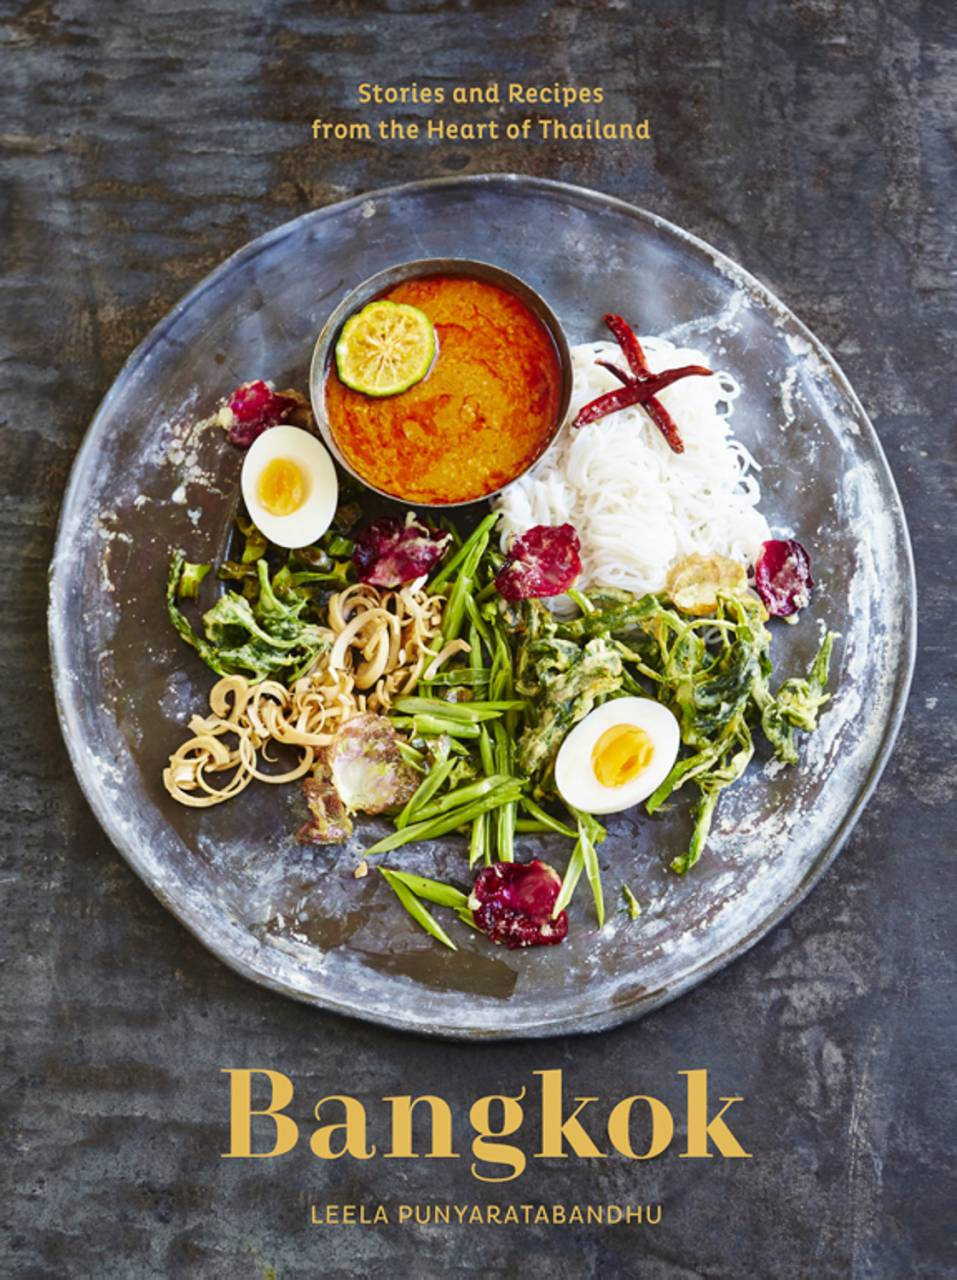 We couldn't have a list of top cookbooks without including a Thai one!